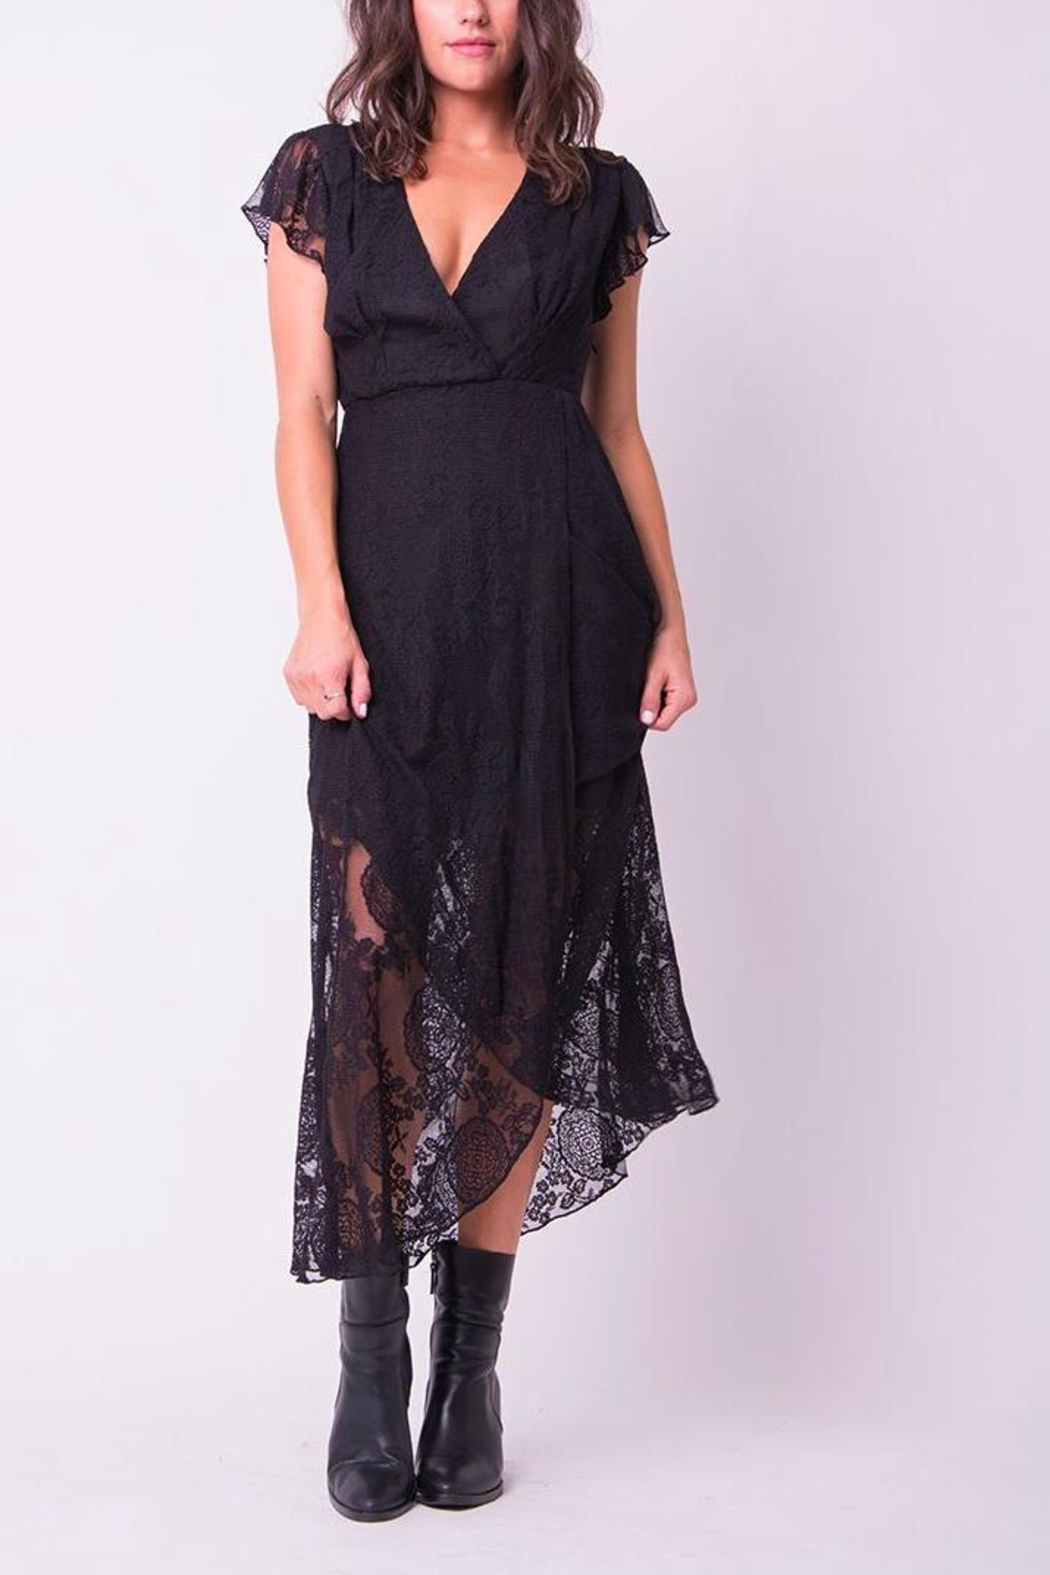 Wanderlux Black Lace Dress - Main Image